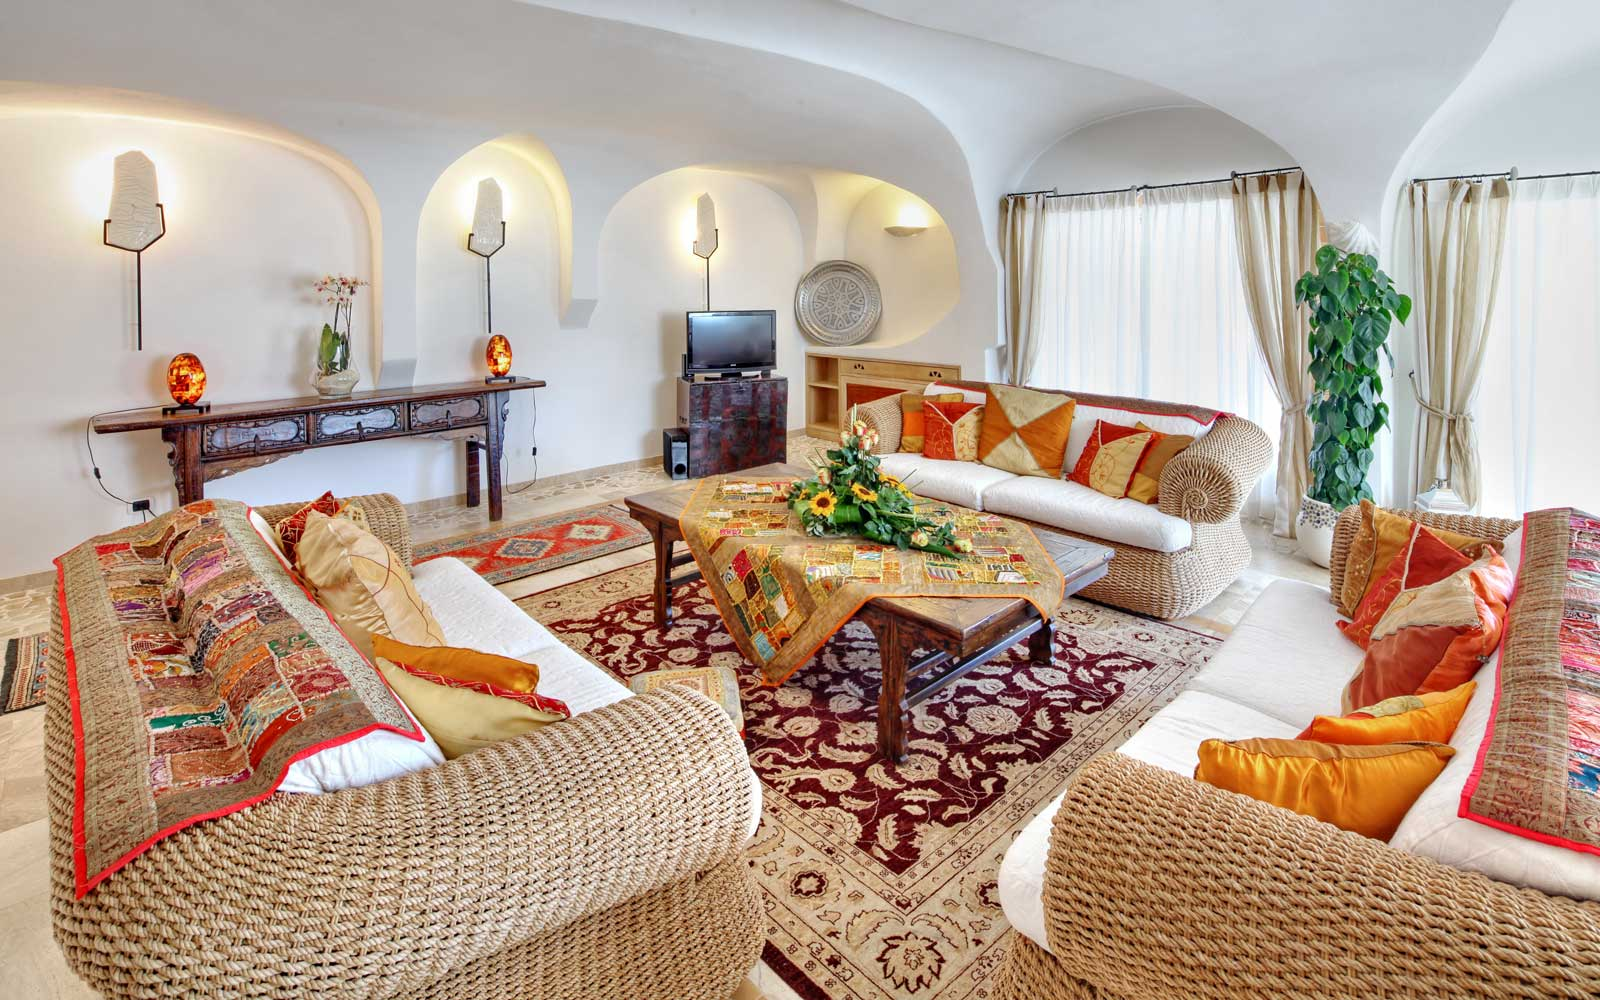 Presidential Suite Lounge Area at Grand Hotel Poltu Quatu